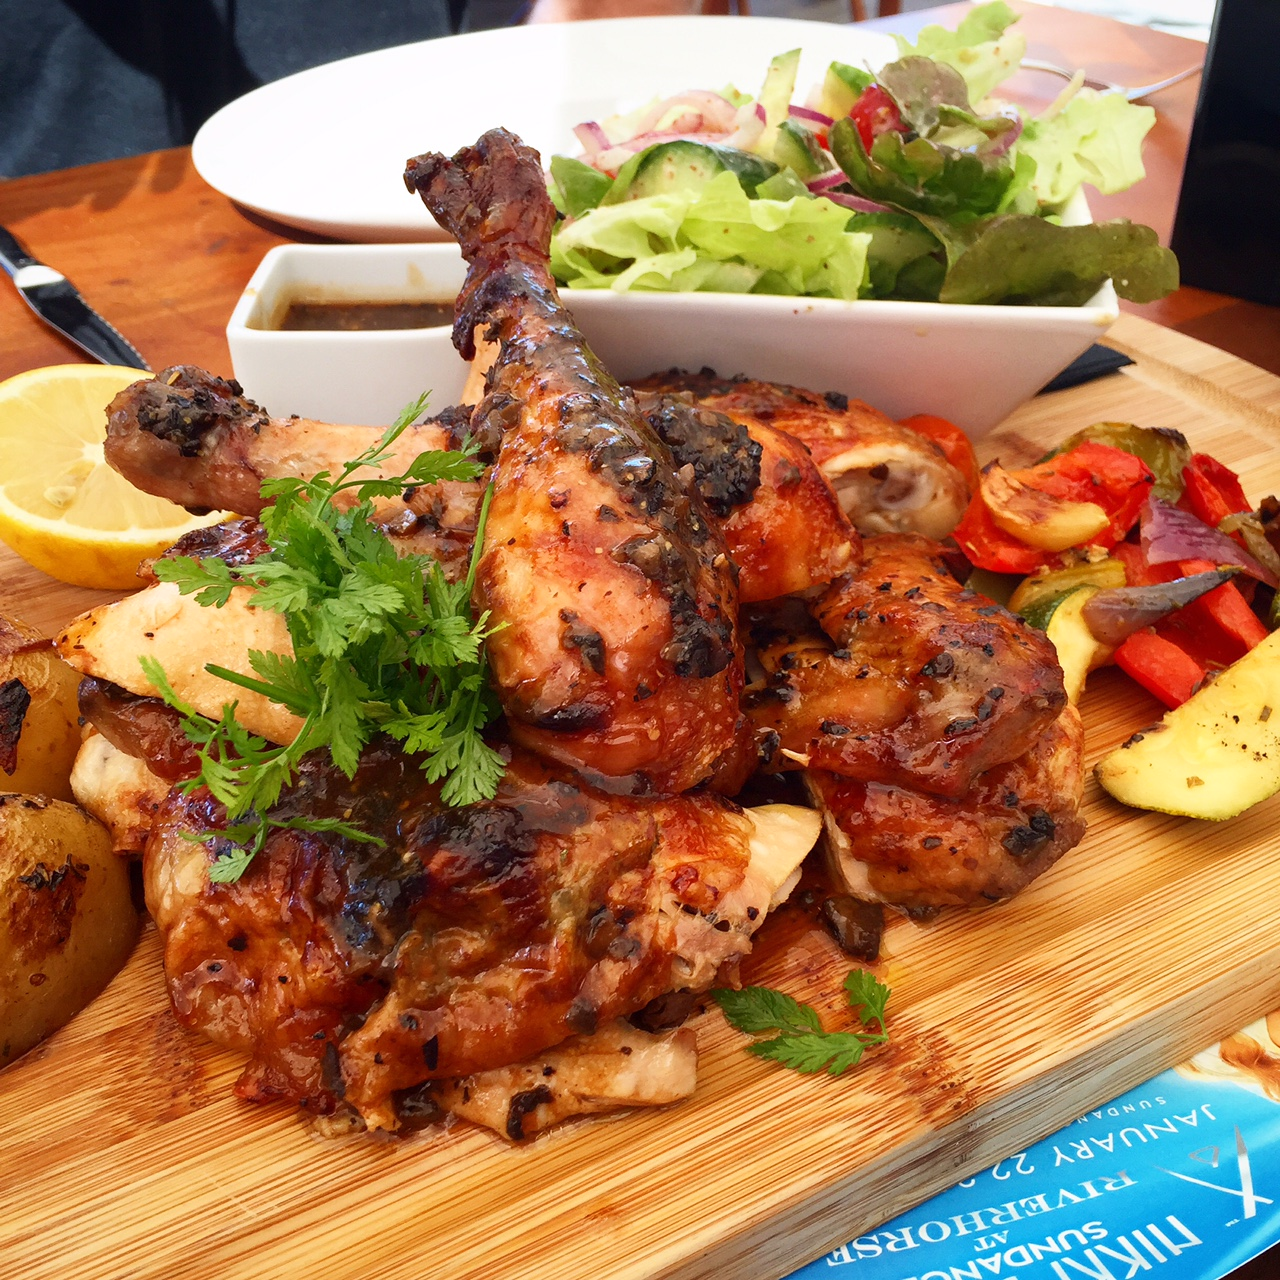 Chicken for days at Nikki Beach, St. Barth's